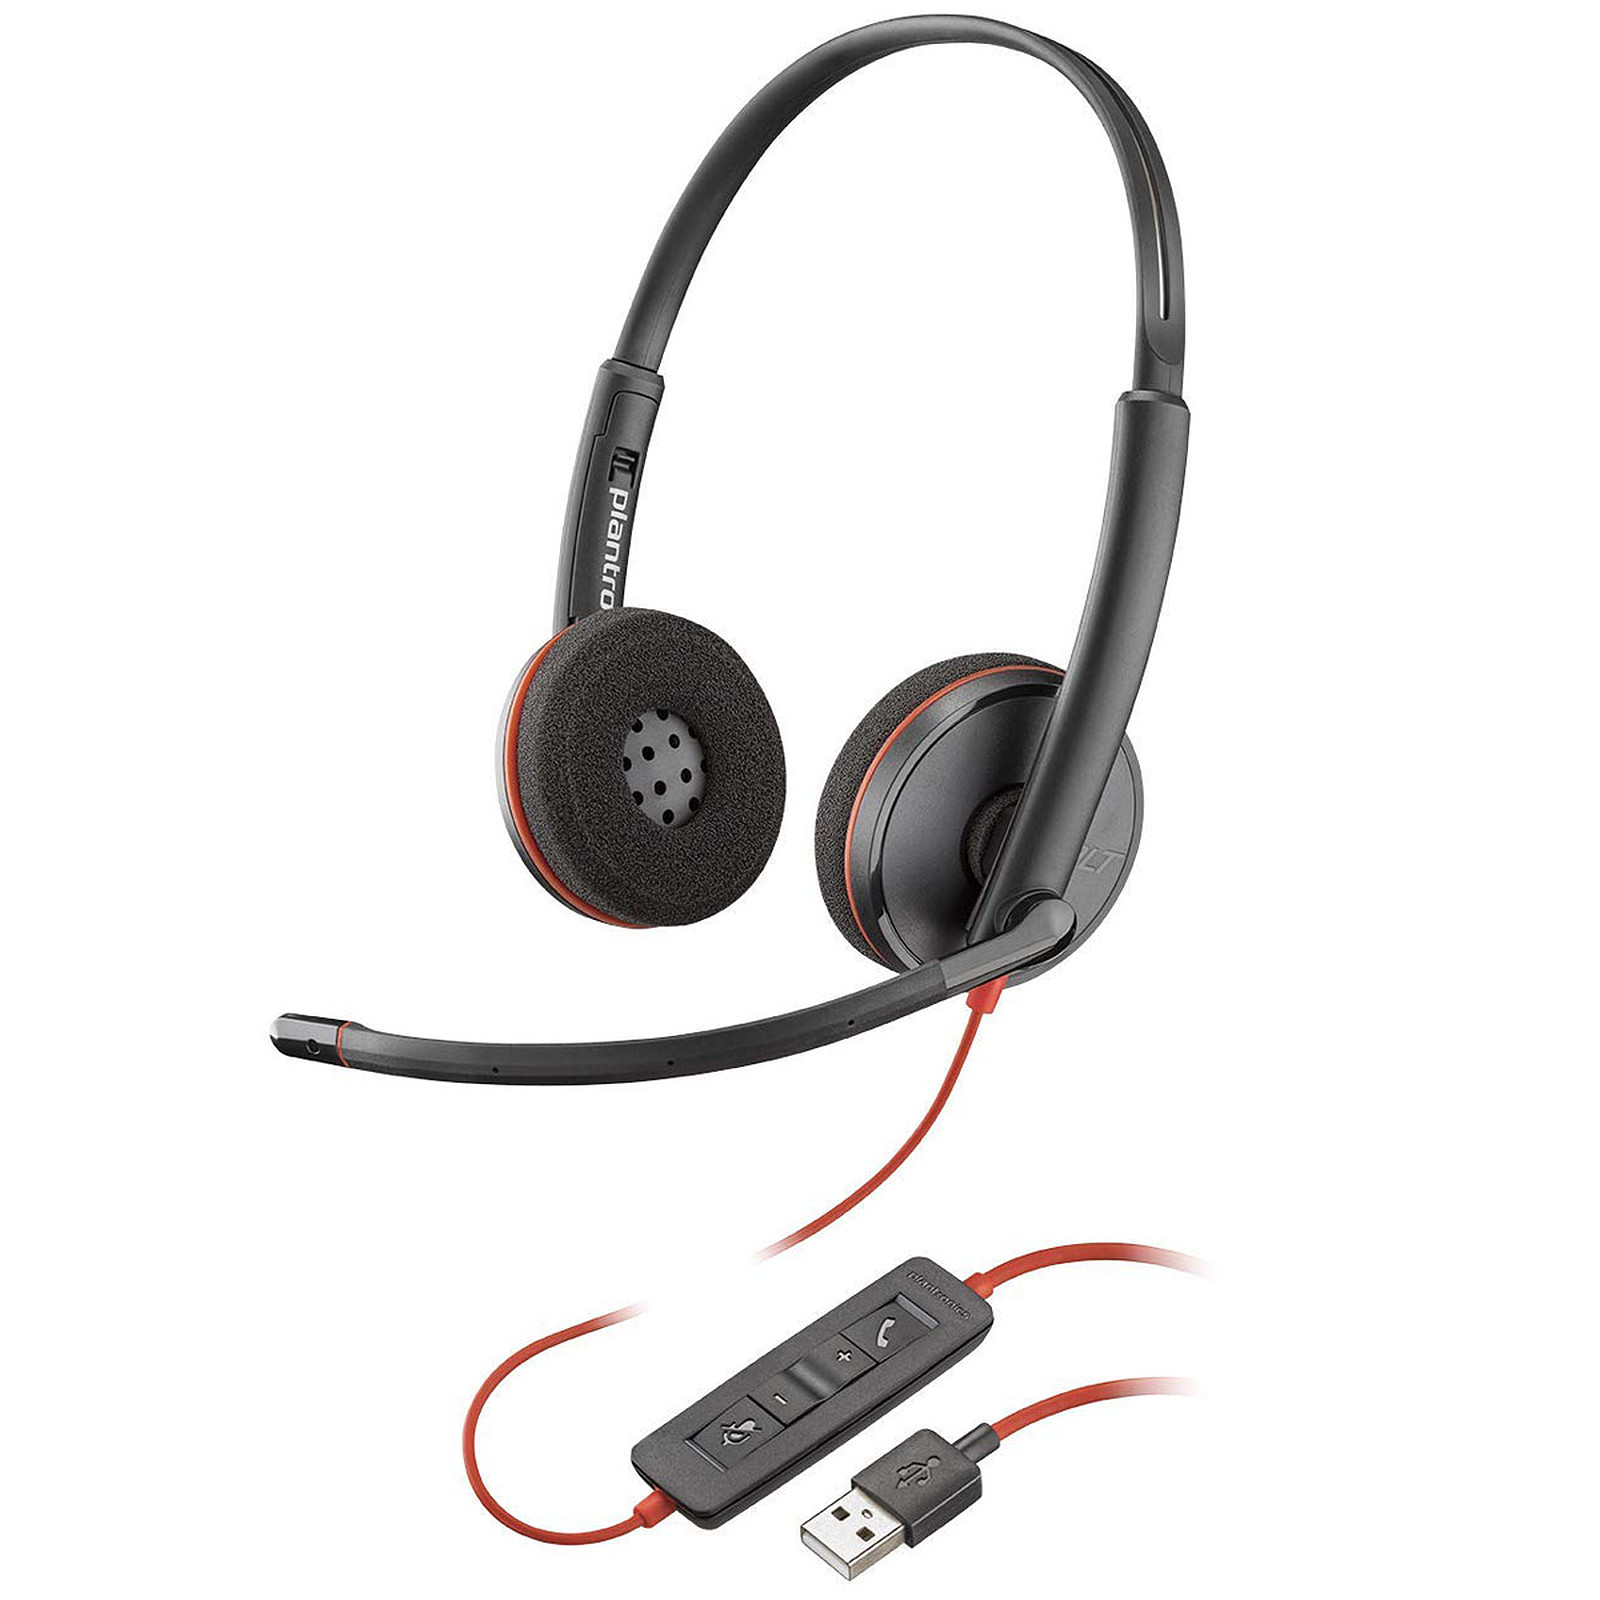 Blackwire C3220 USB-A